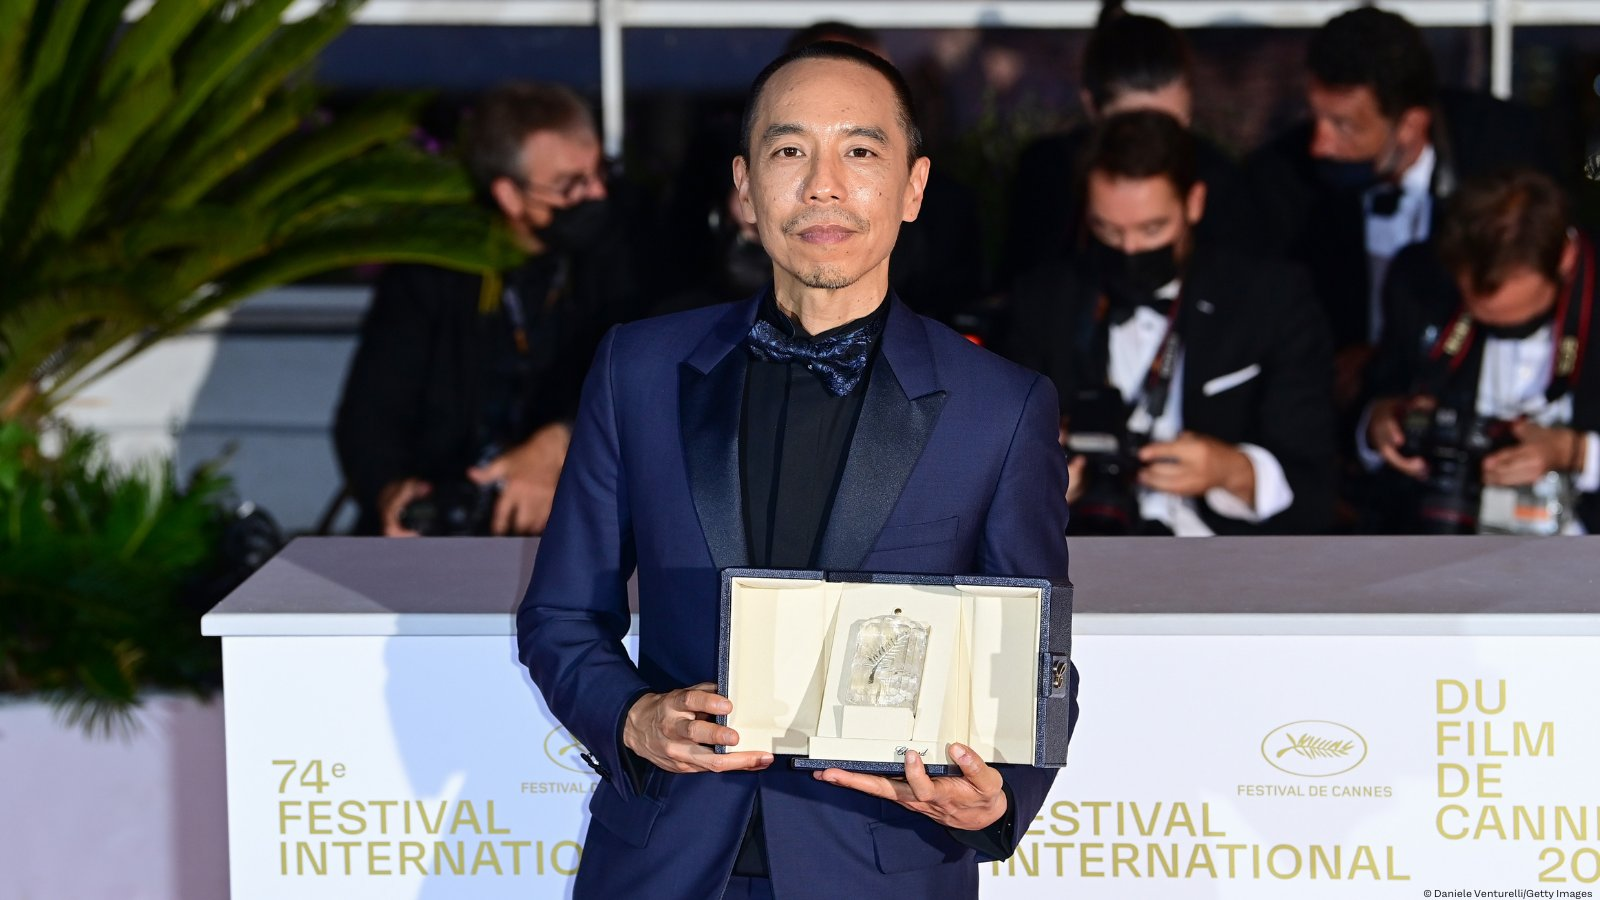 memoria-wins-jury-prize-at-cannes:-here-are-5-facts-about-its-director,-apichatpong-weerasethakul